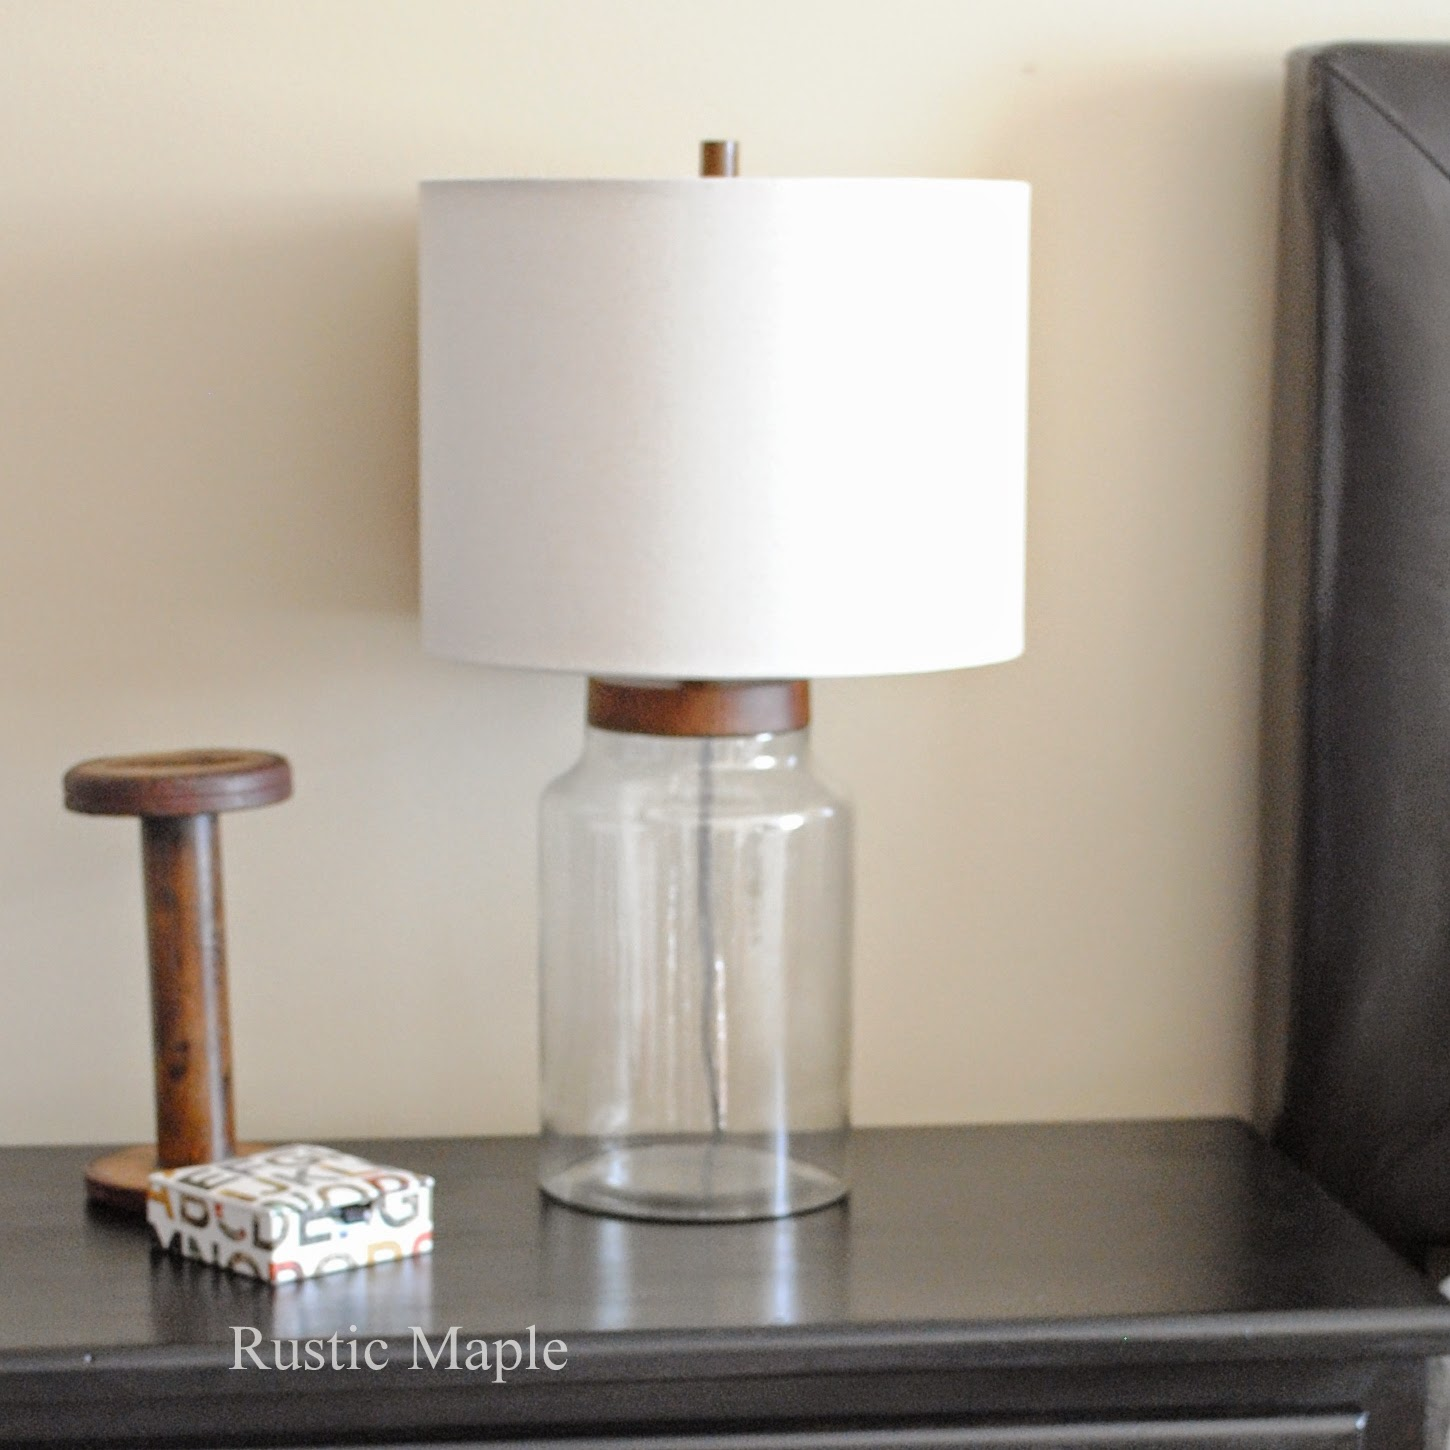 Rustic Maple: New Lamps for Our Master Bedroom